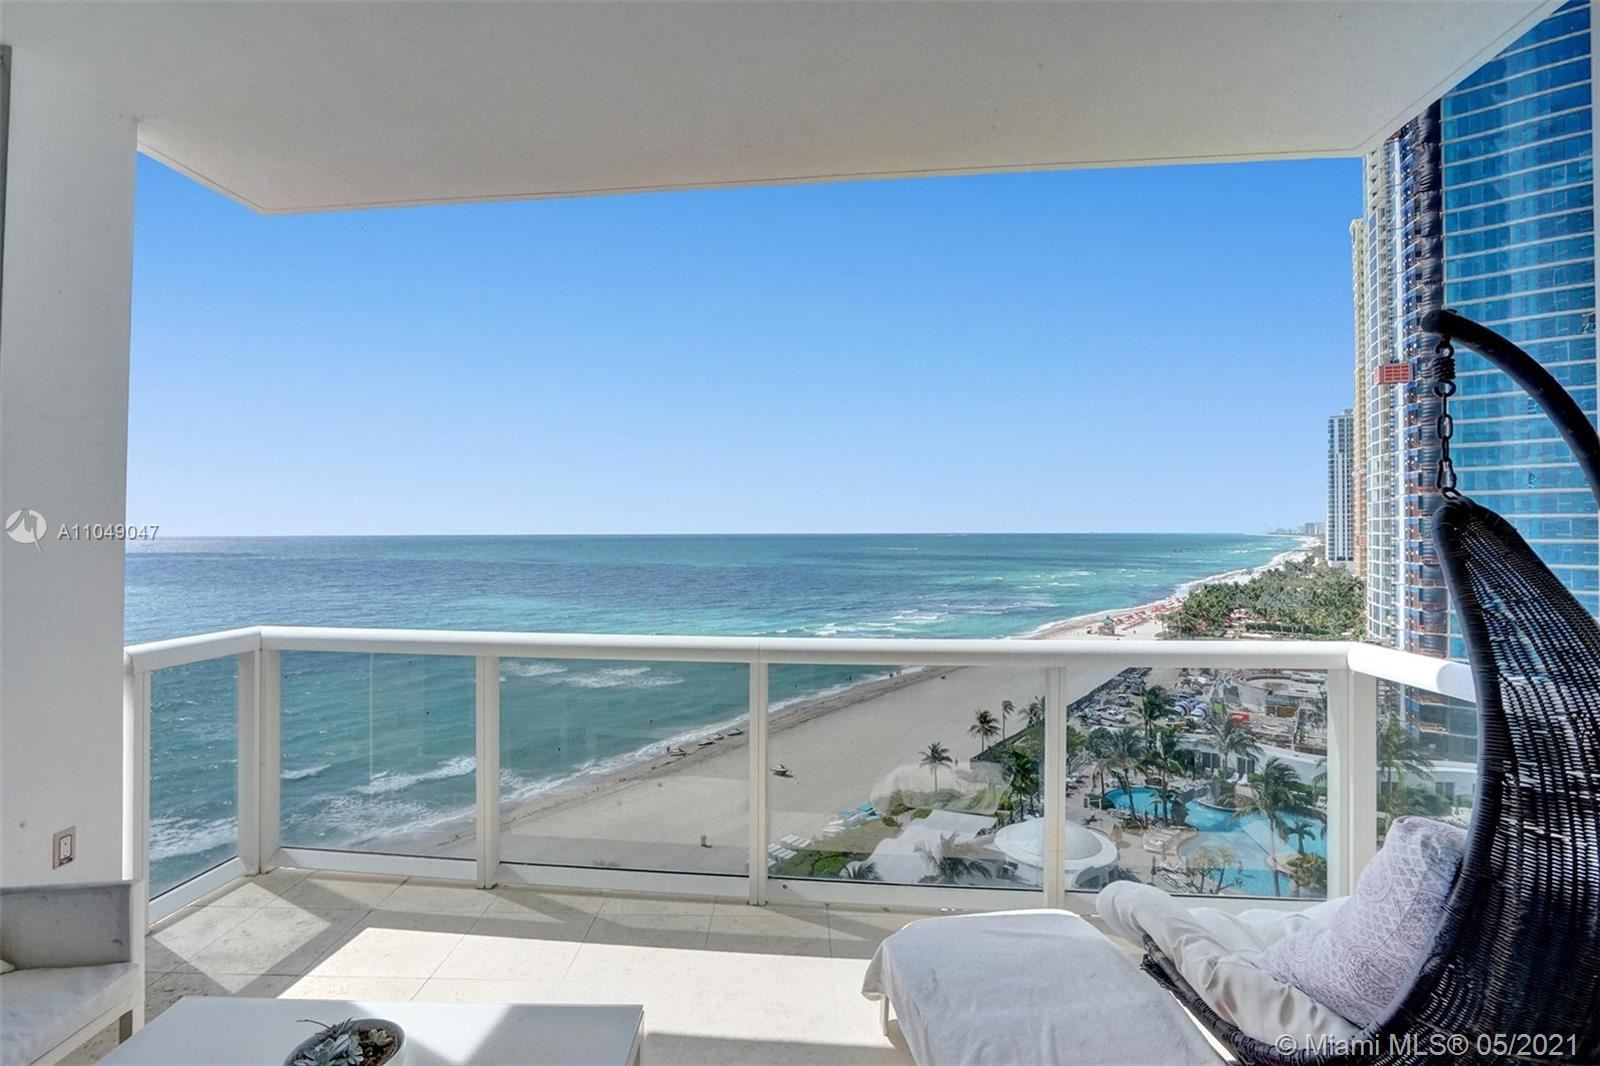 18101 Collins Ave #1405, Sunny Isles, FL 33160 - #: A11049047